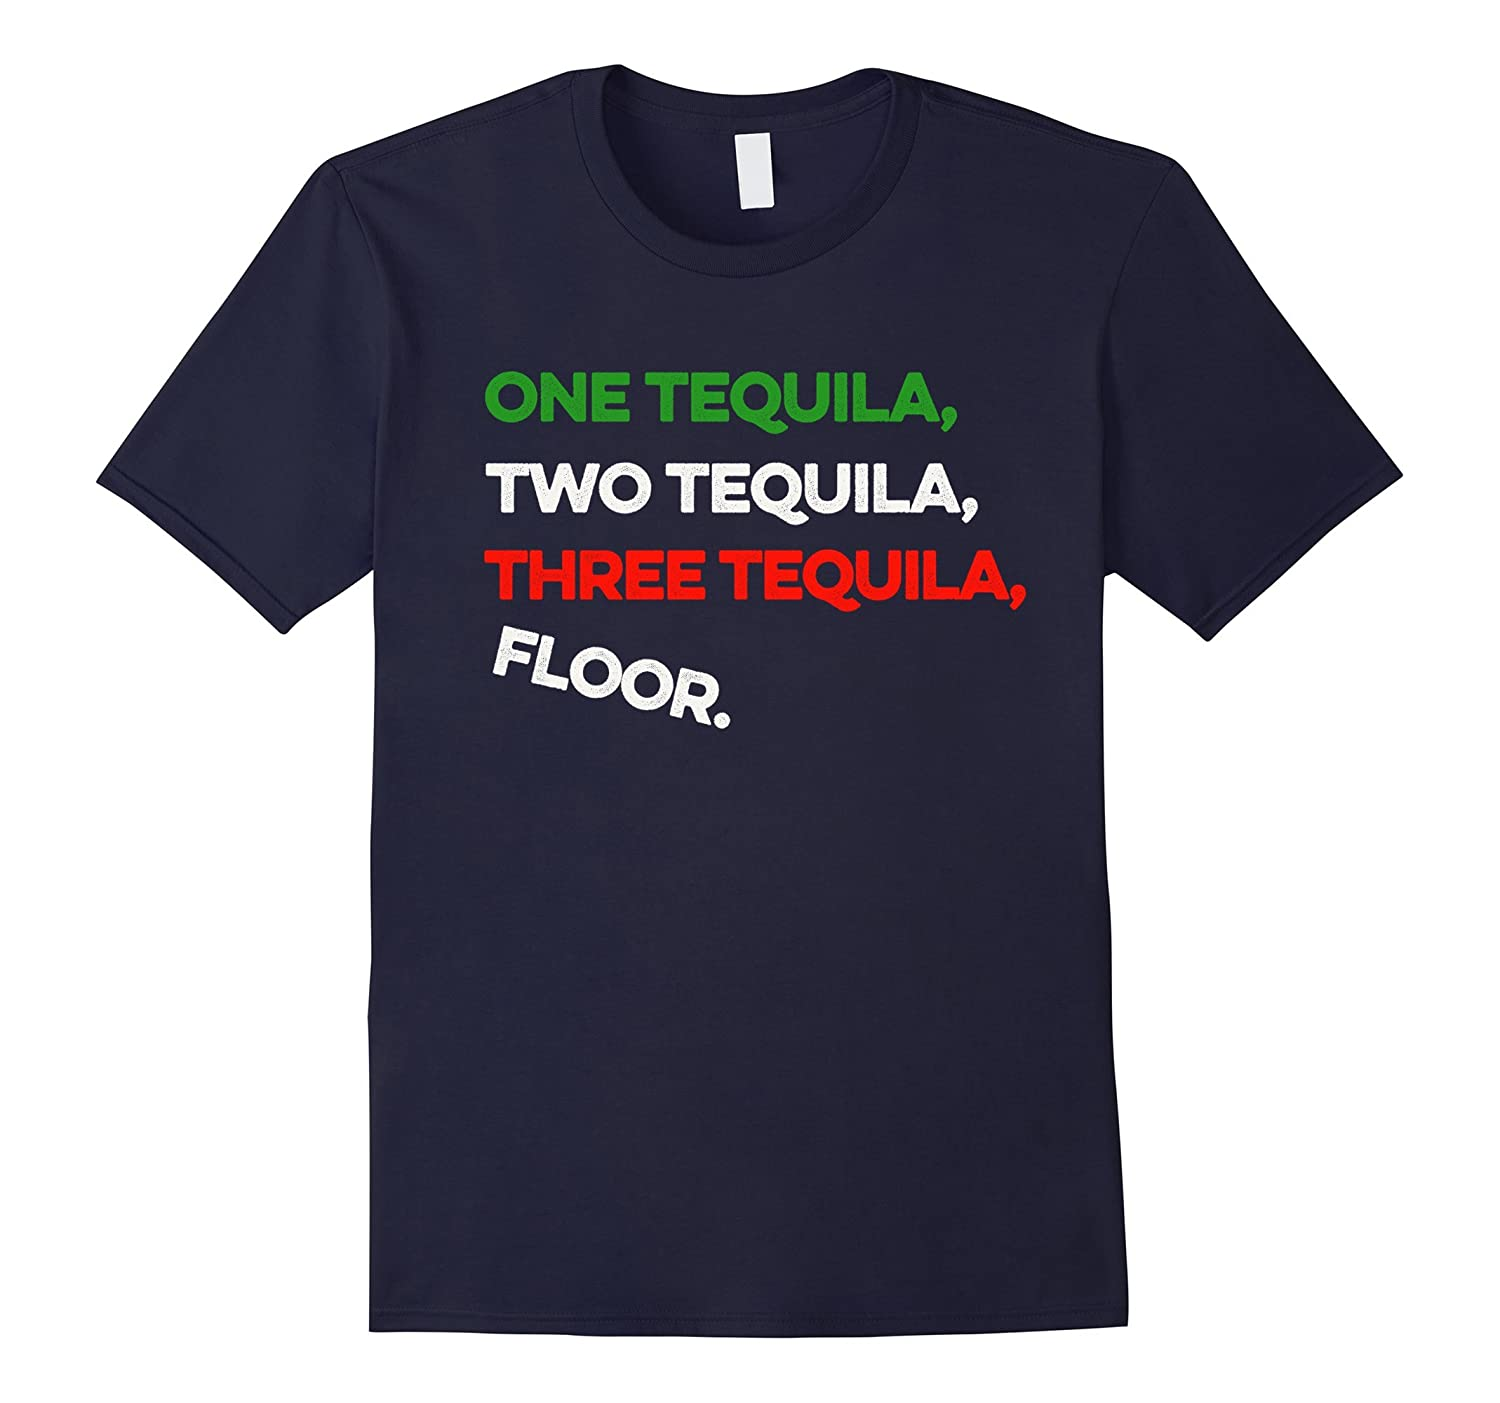 Cinco de Mayo May 5th 2017 Drinking Party Tequila T-Shirt-Vaci